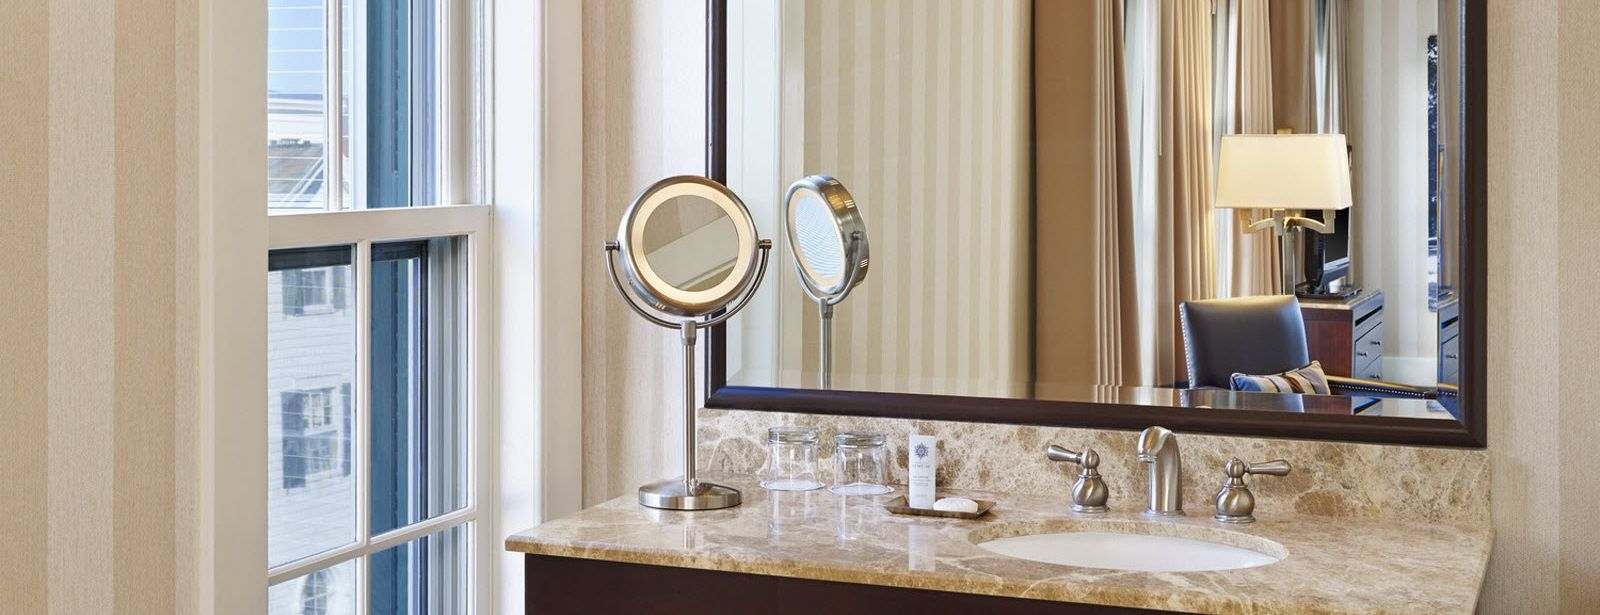 The Equinox, a Luxury Collection Golf Resort & Spa, Vermont traditional guest room bathroom Orvis Inn